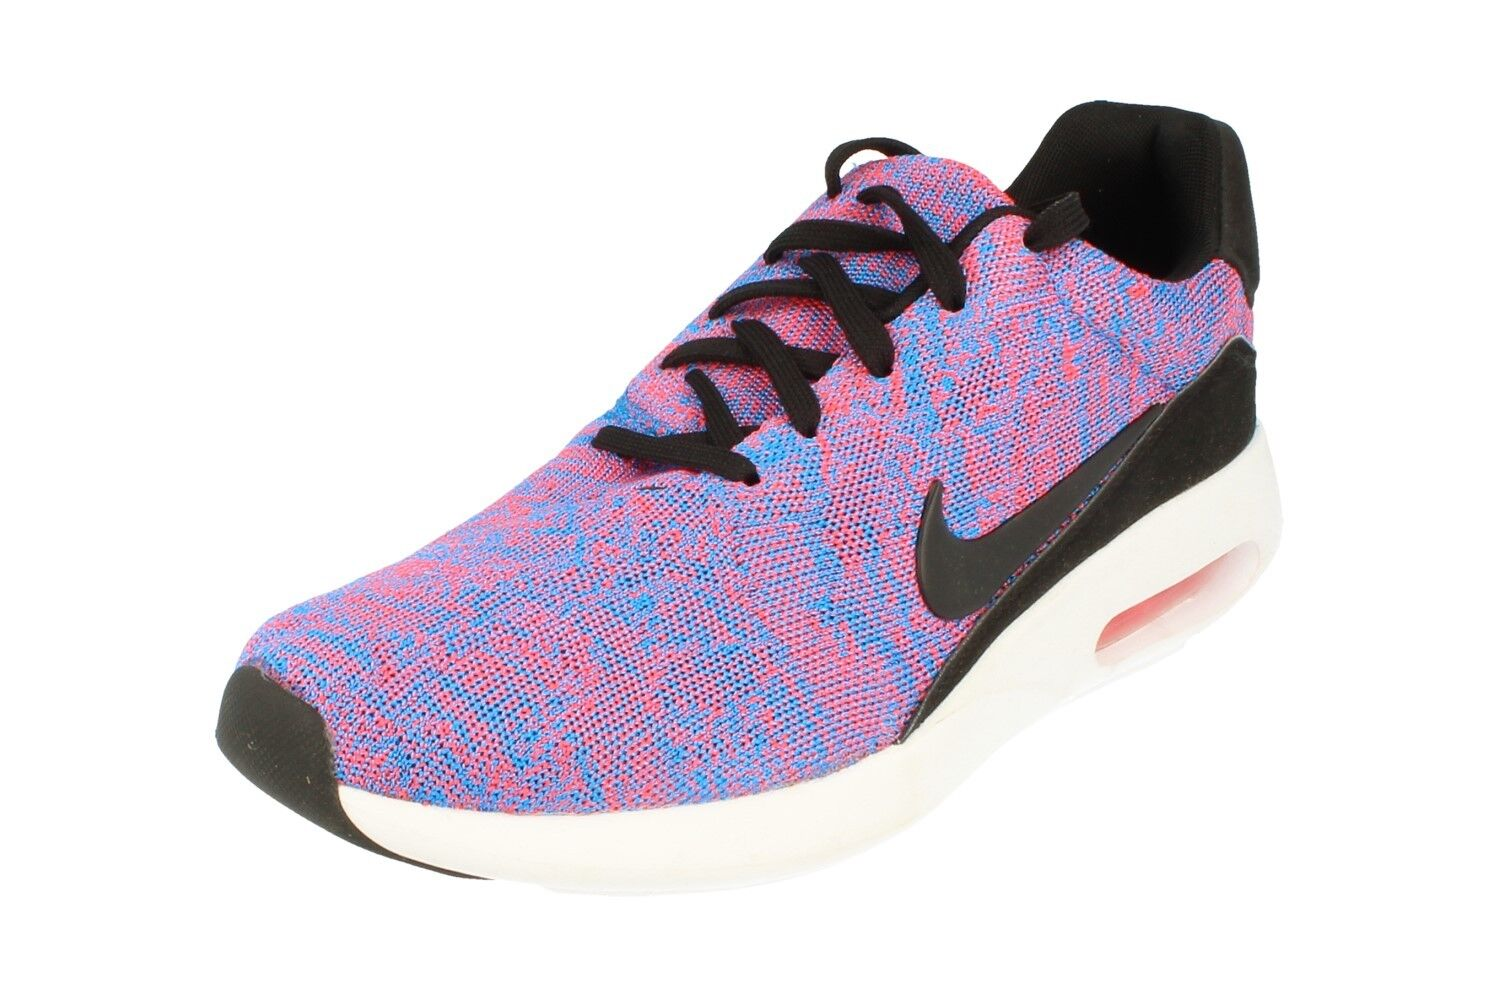 Nike Air Max Modern Flyknit Mens Running Trainers 876066 401 Sneakers Clearance